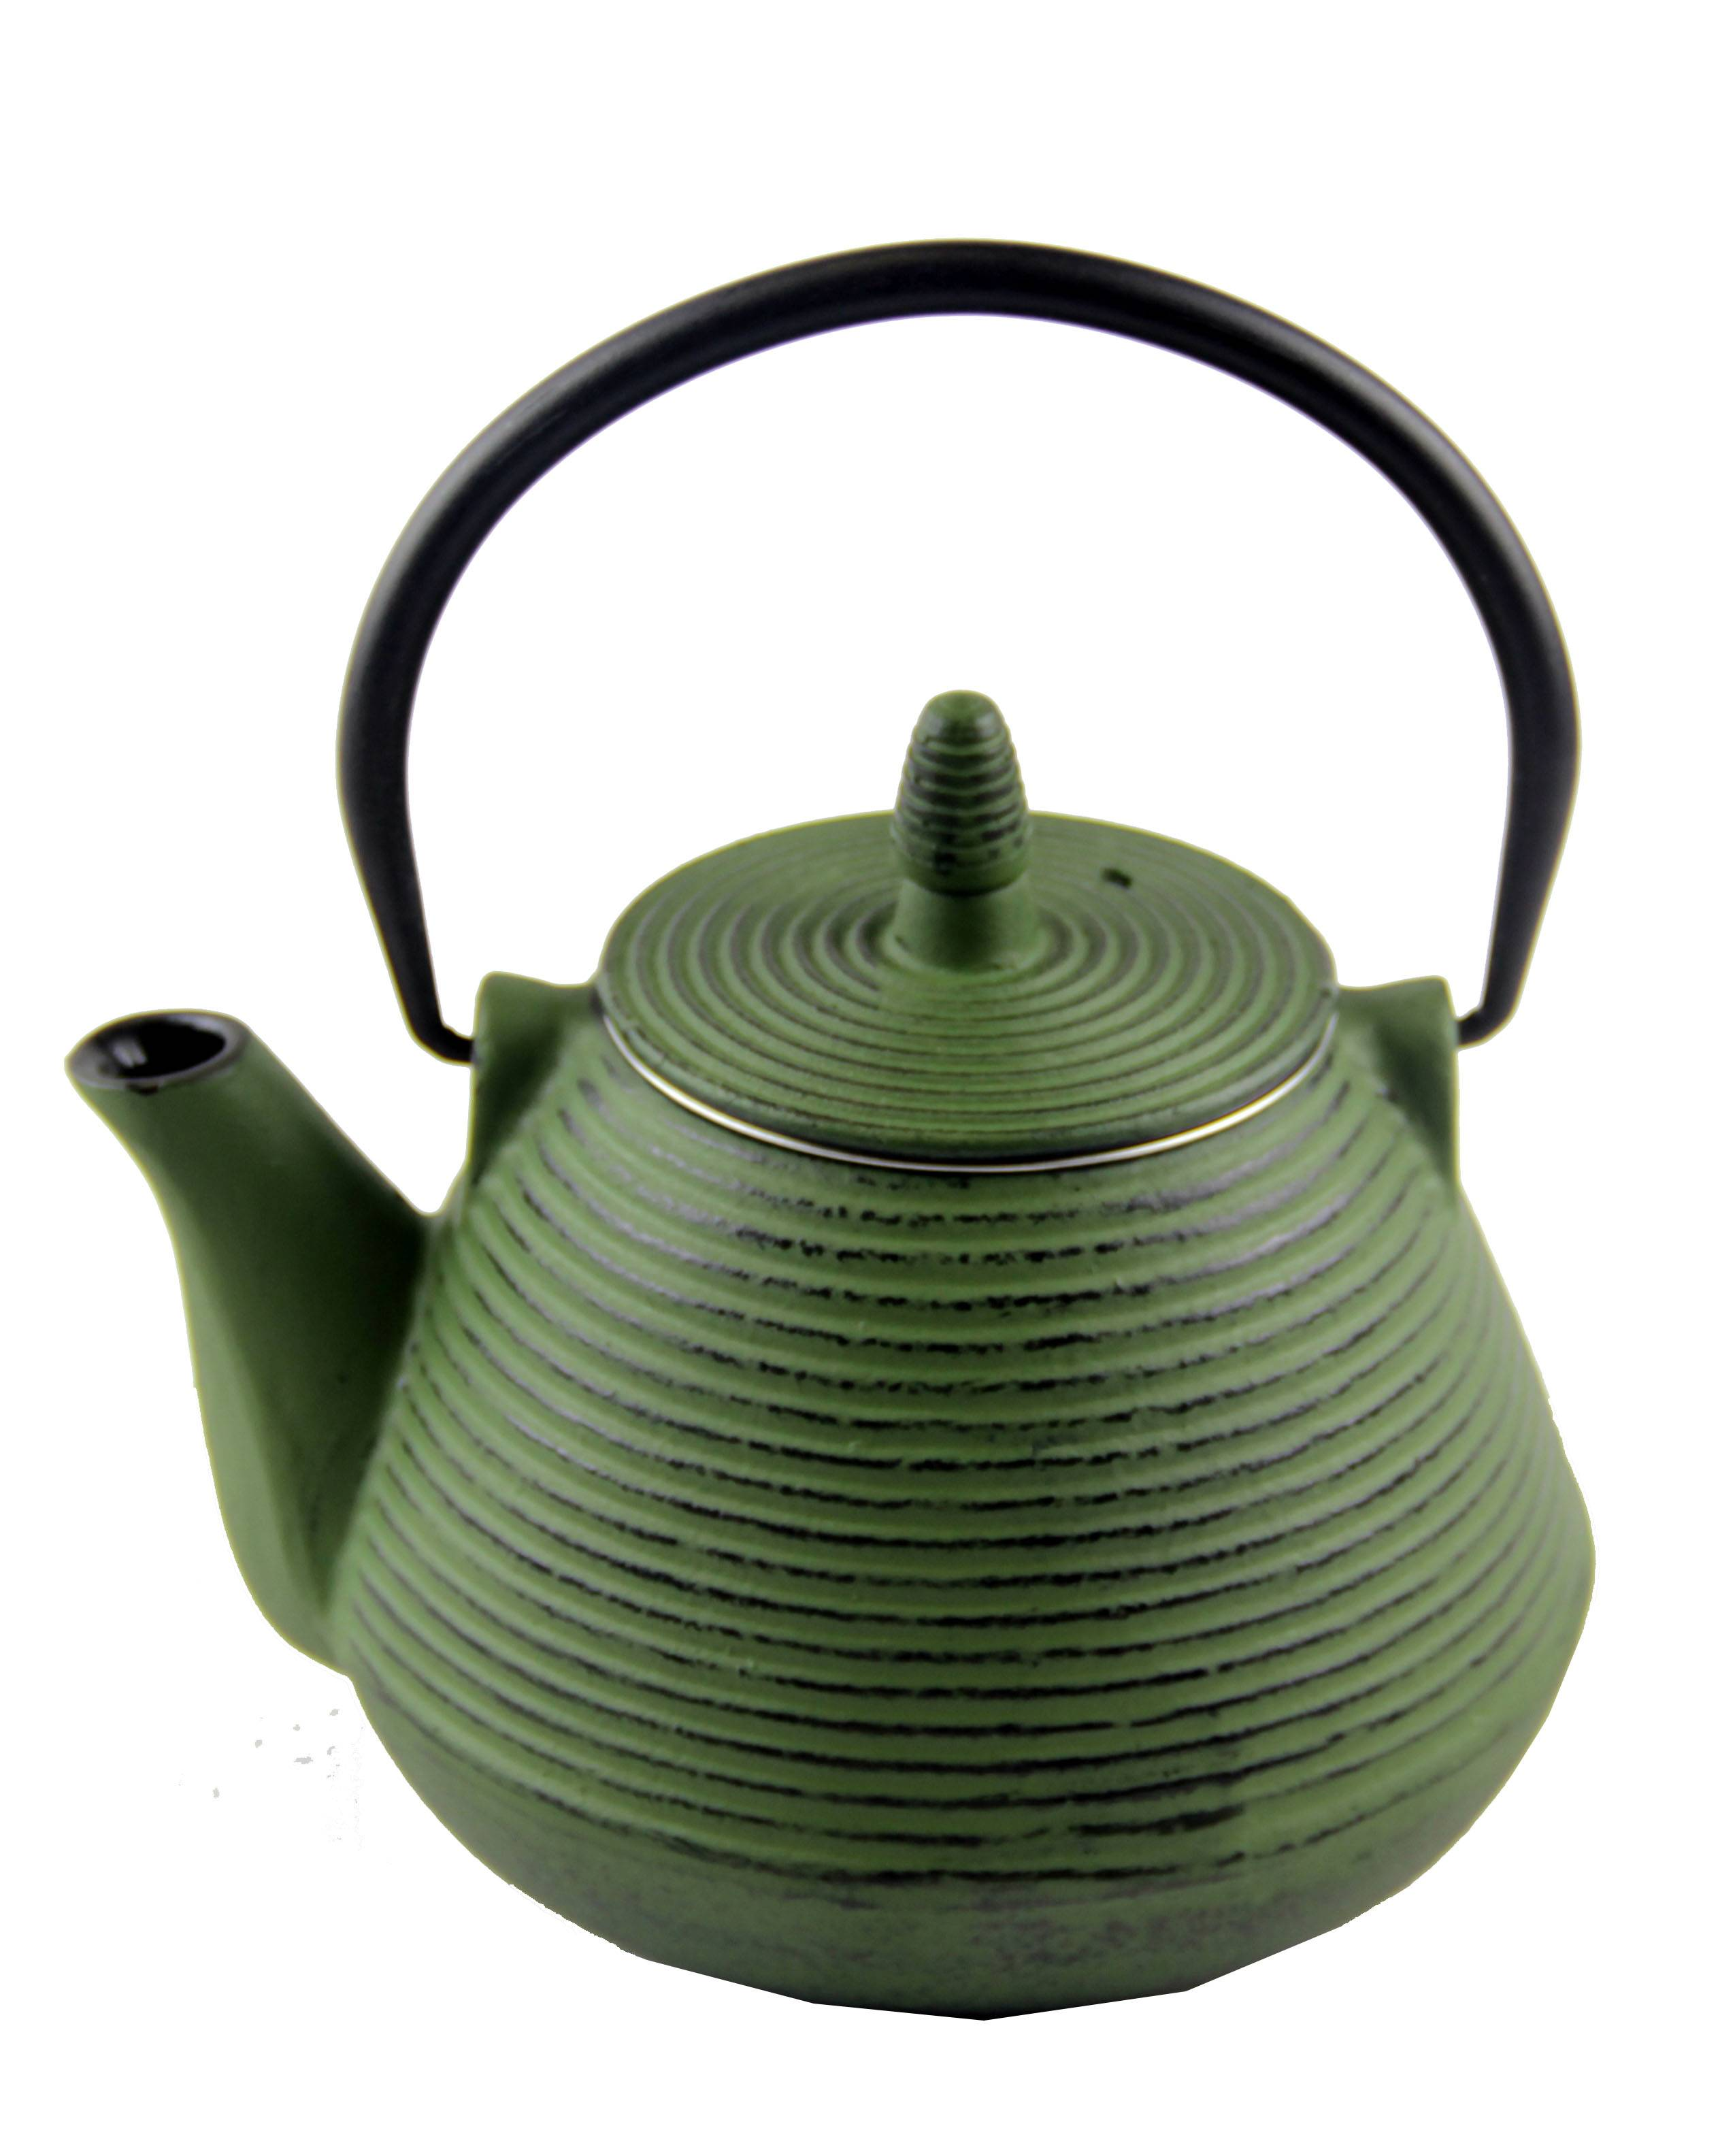 Popular Design for Casseroles Set With Frying Pan - Unique Cast Iron Japanese Teapot Kettle Set With Trivet And Cup – Forrest